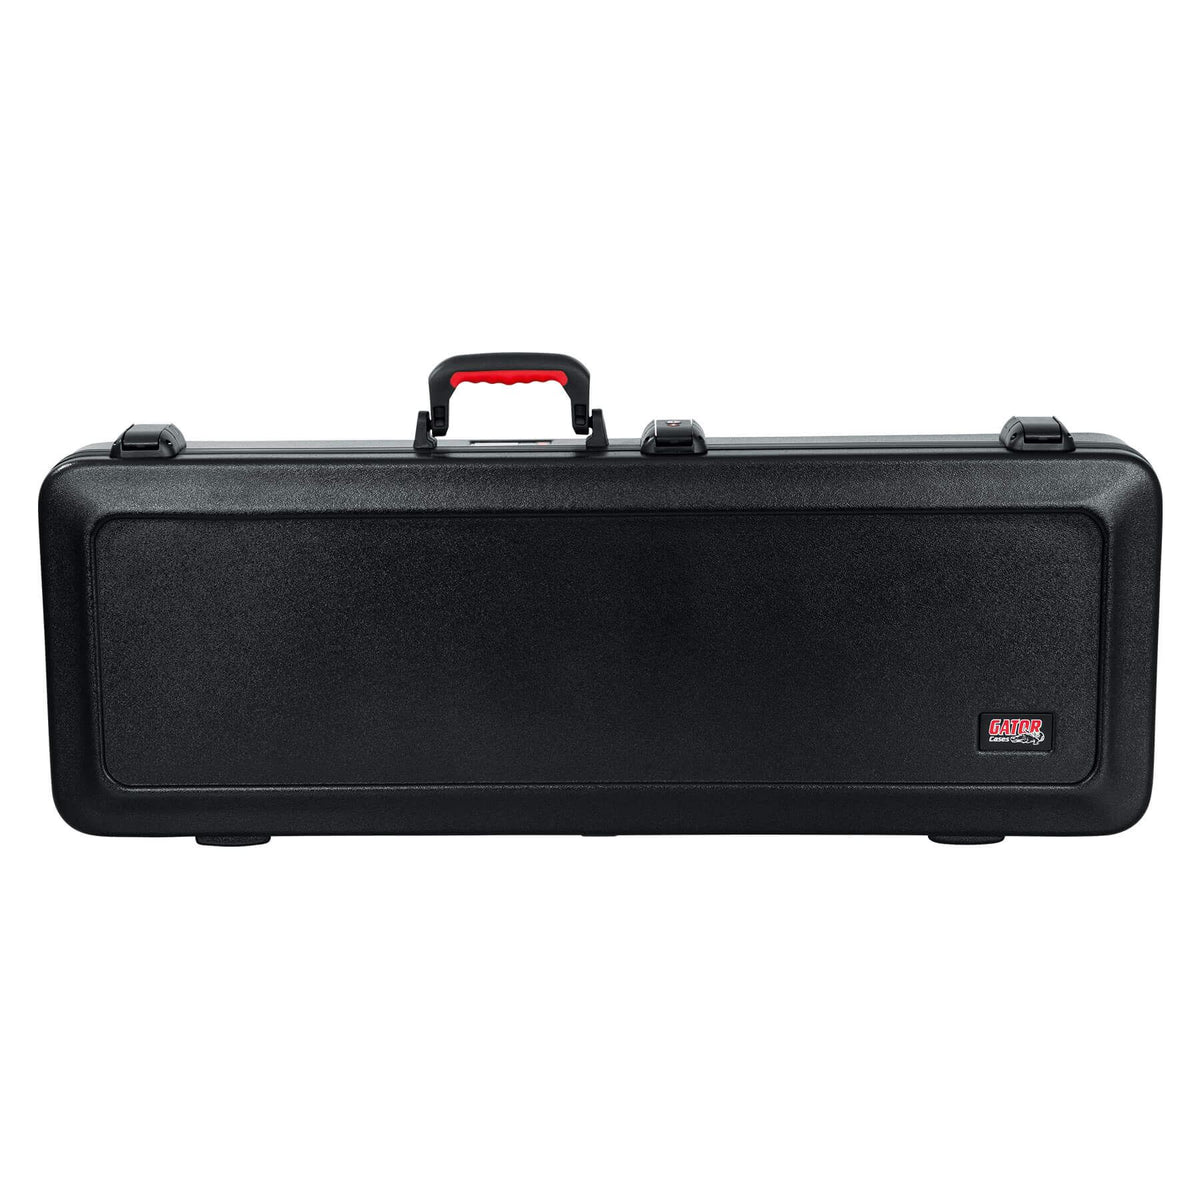 Gator TSA Electric Case fits Fender Deluxe Player's Stratocaster